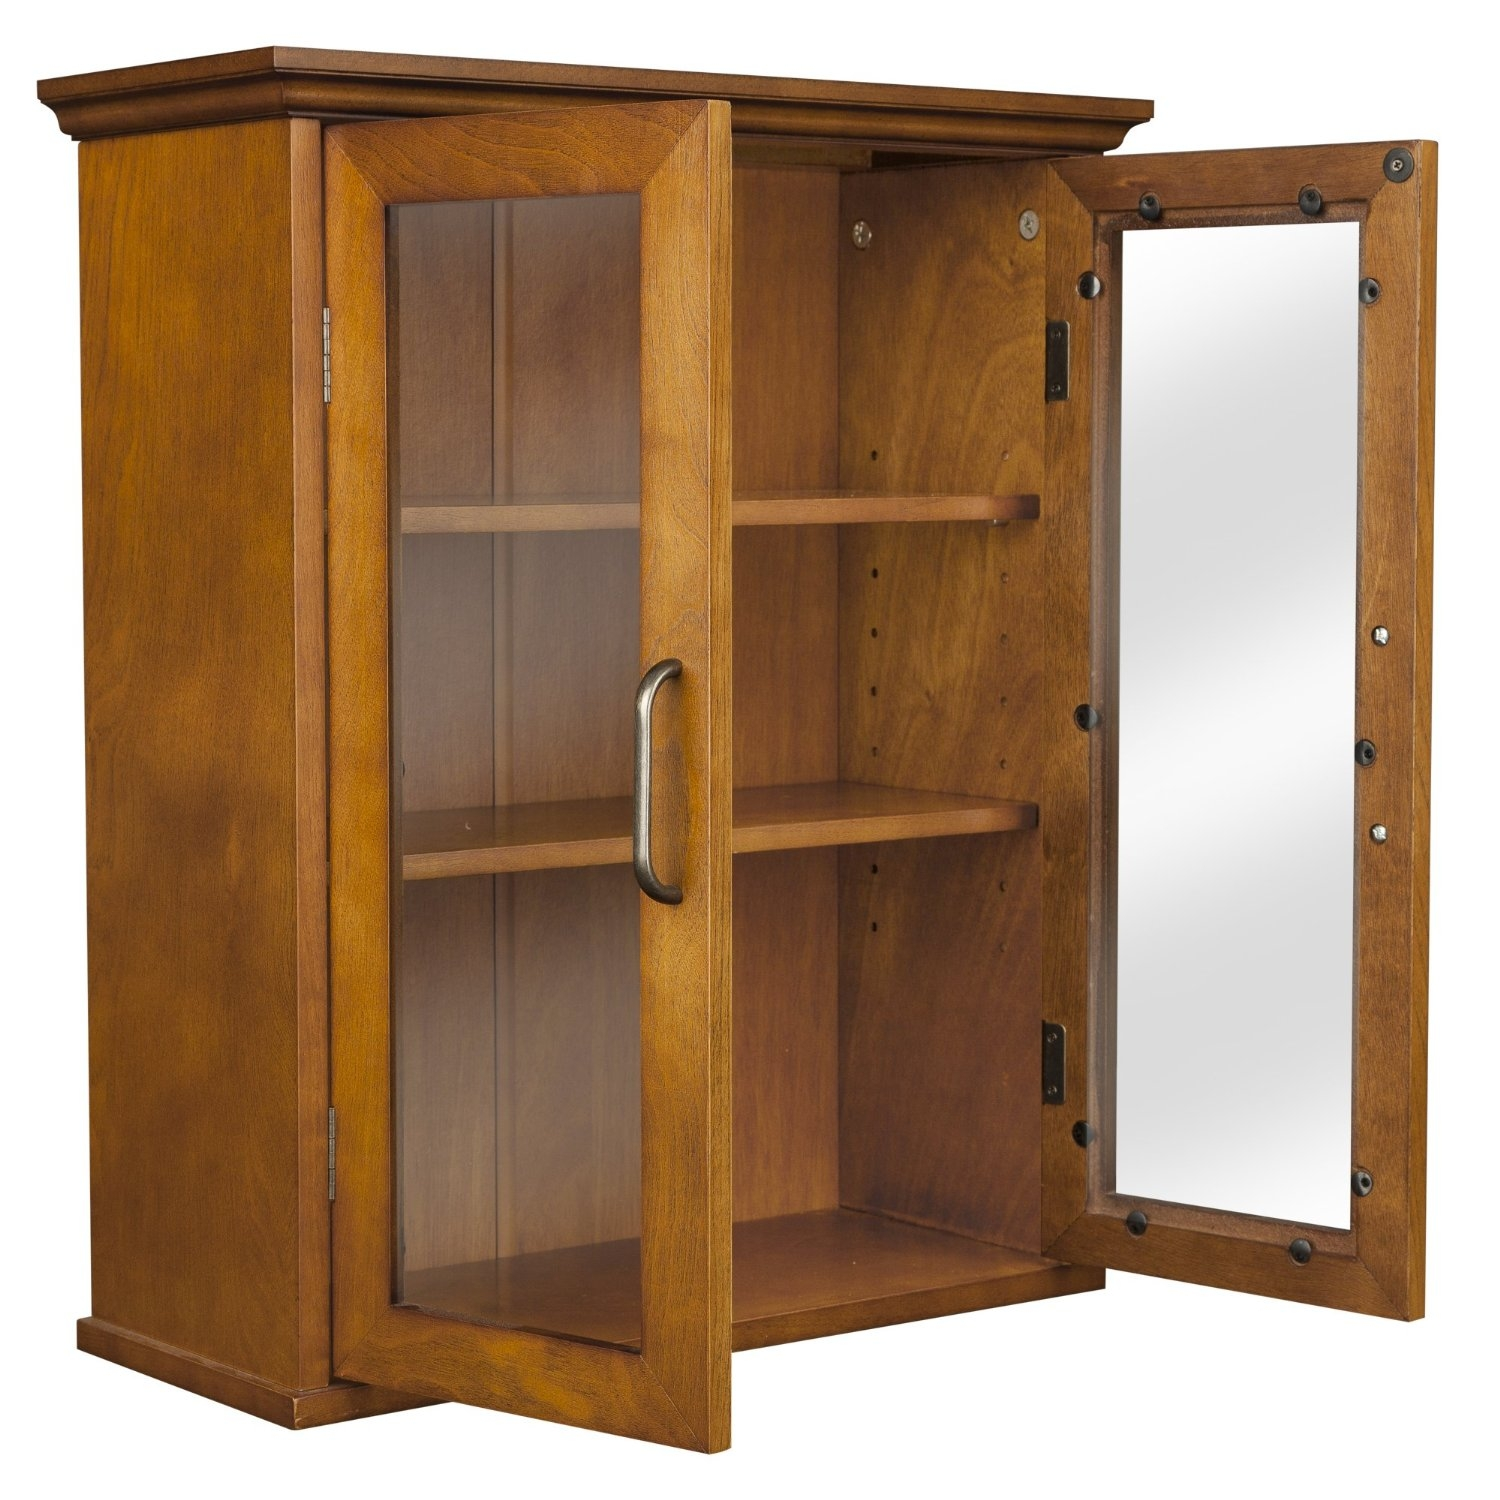 Oak Finish Bathroom Wall Cabinet with Glass 2Doors